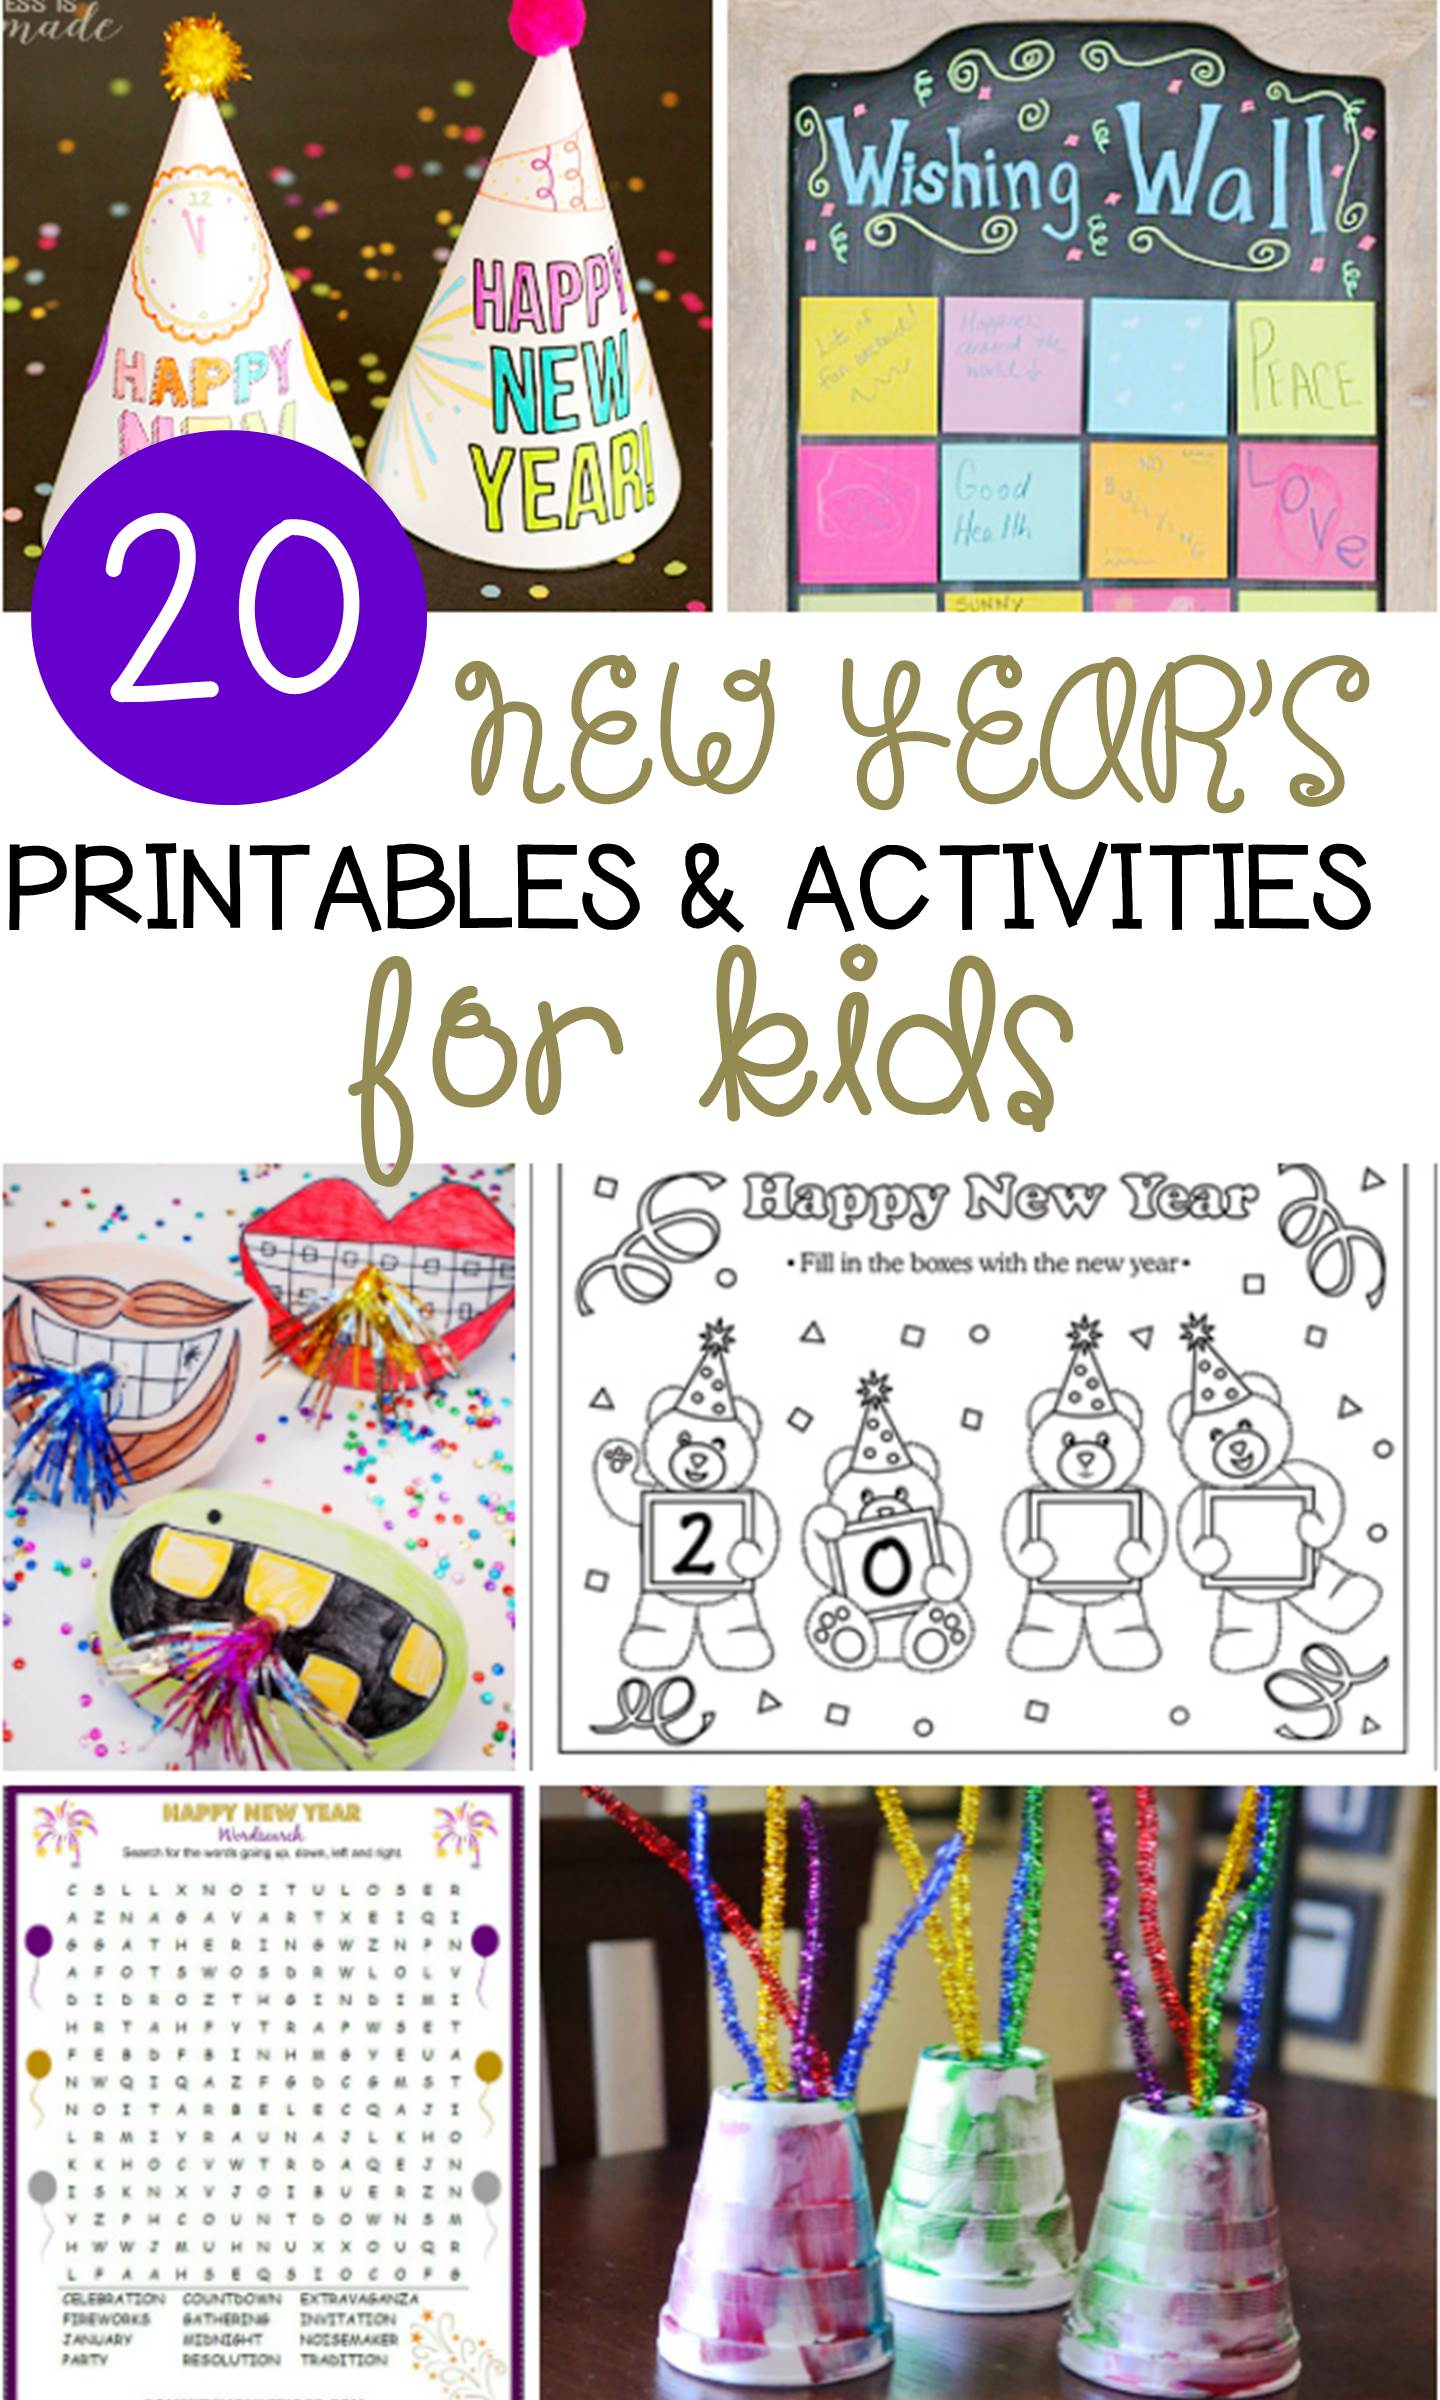 20 New Year's Activities for Kids